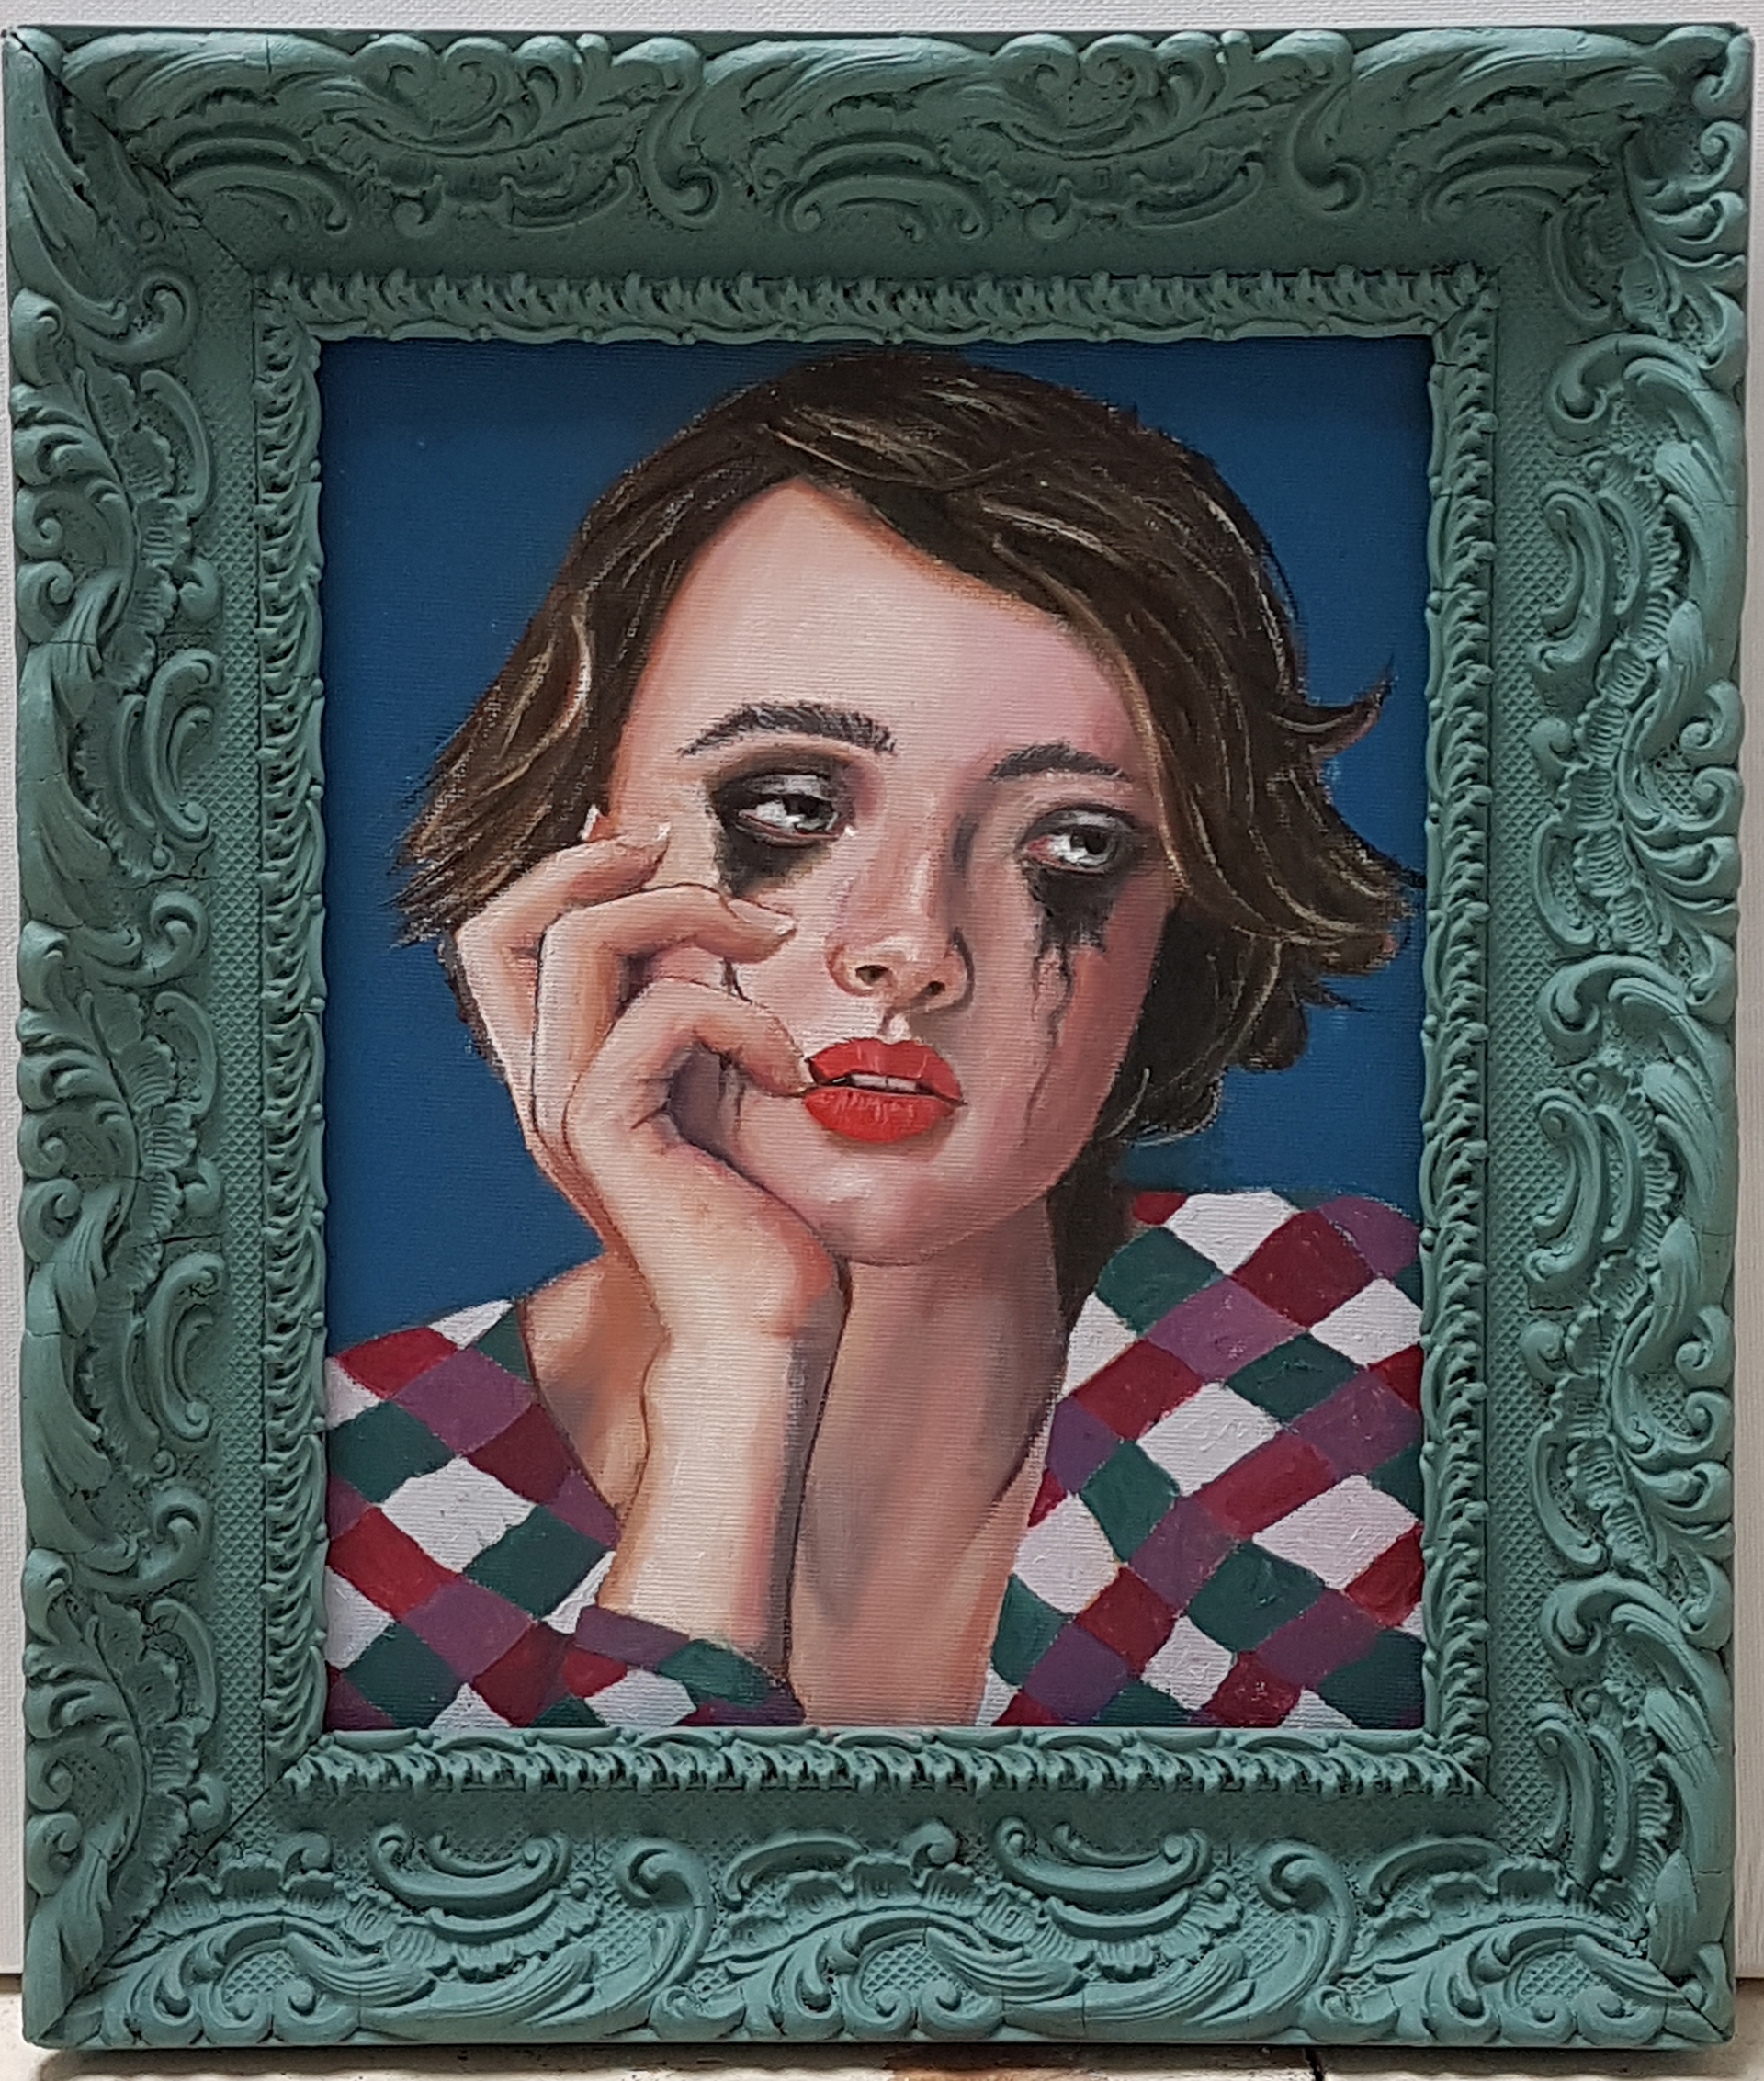 Roy Thomas - Tears of a Clown oil on board 24x20 cms